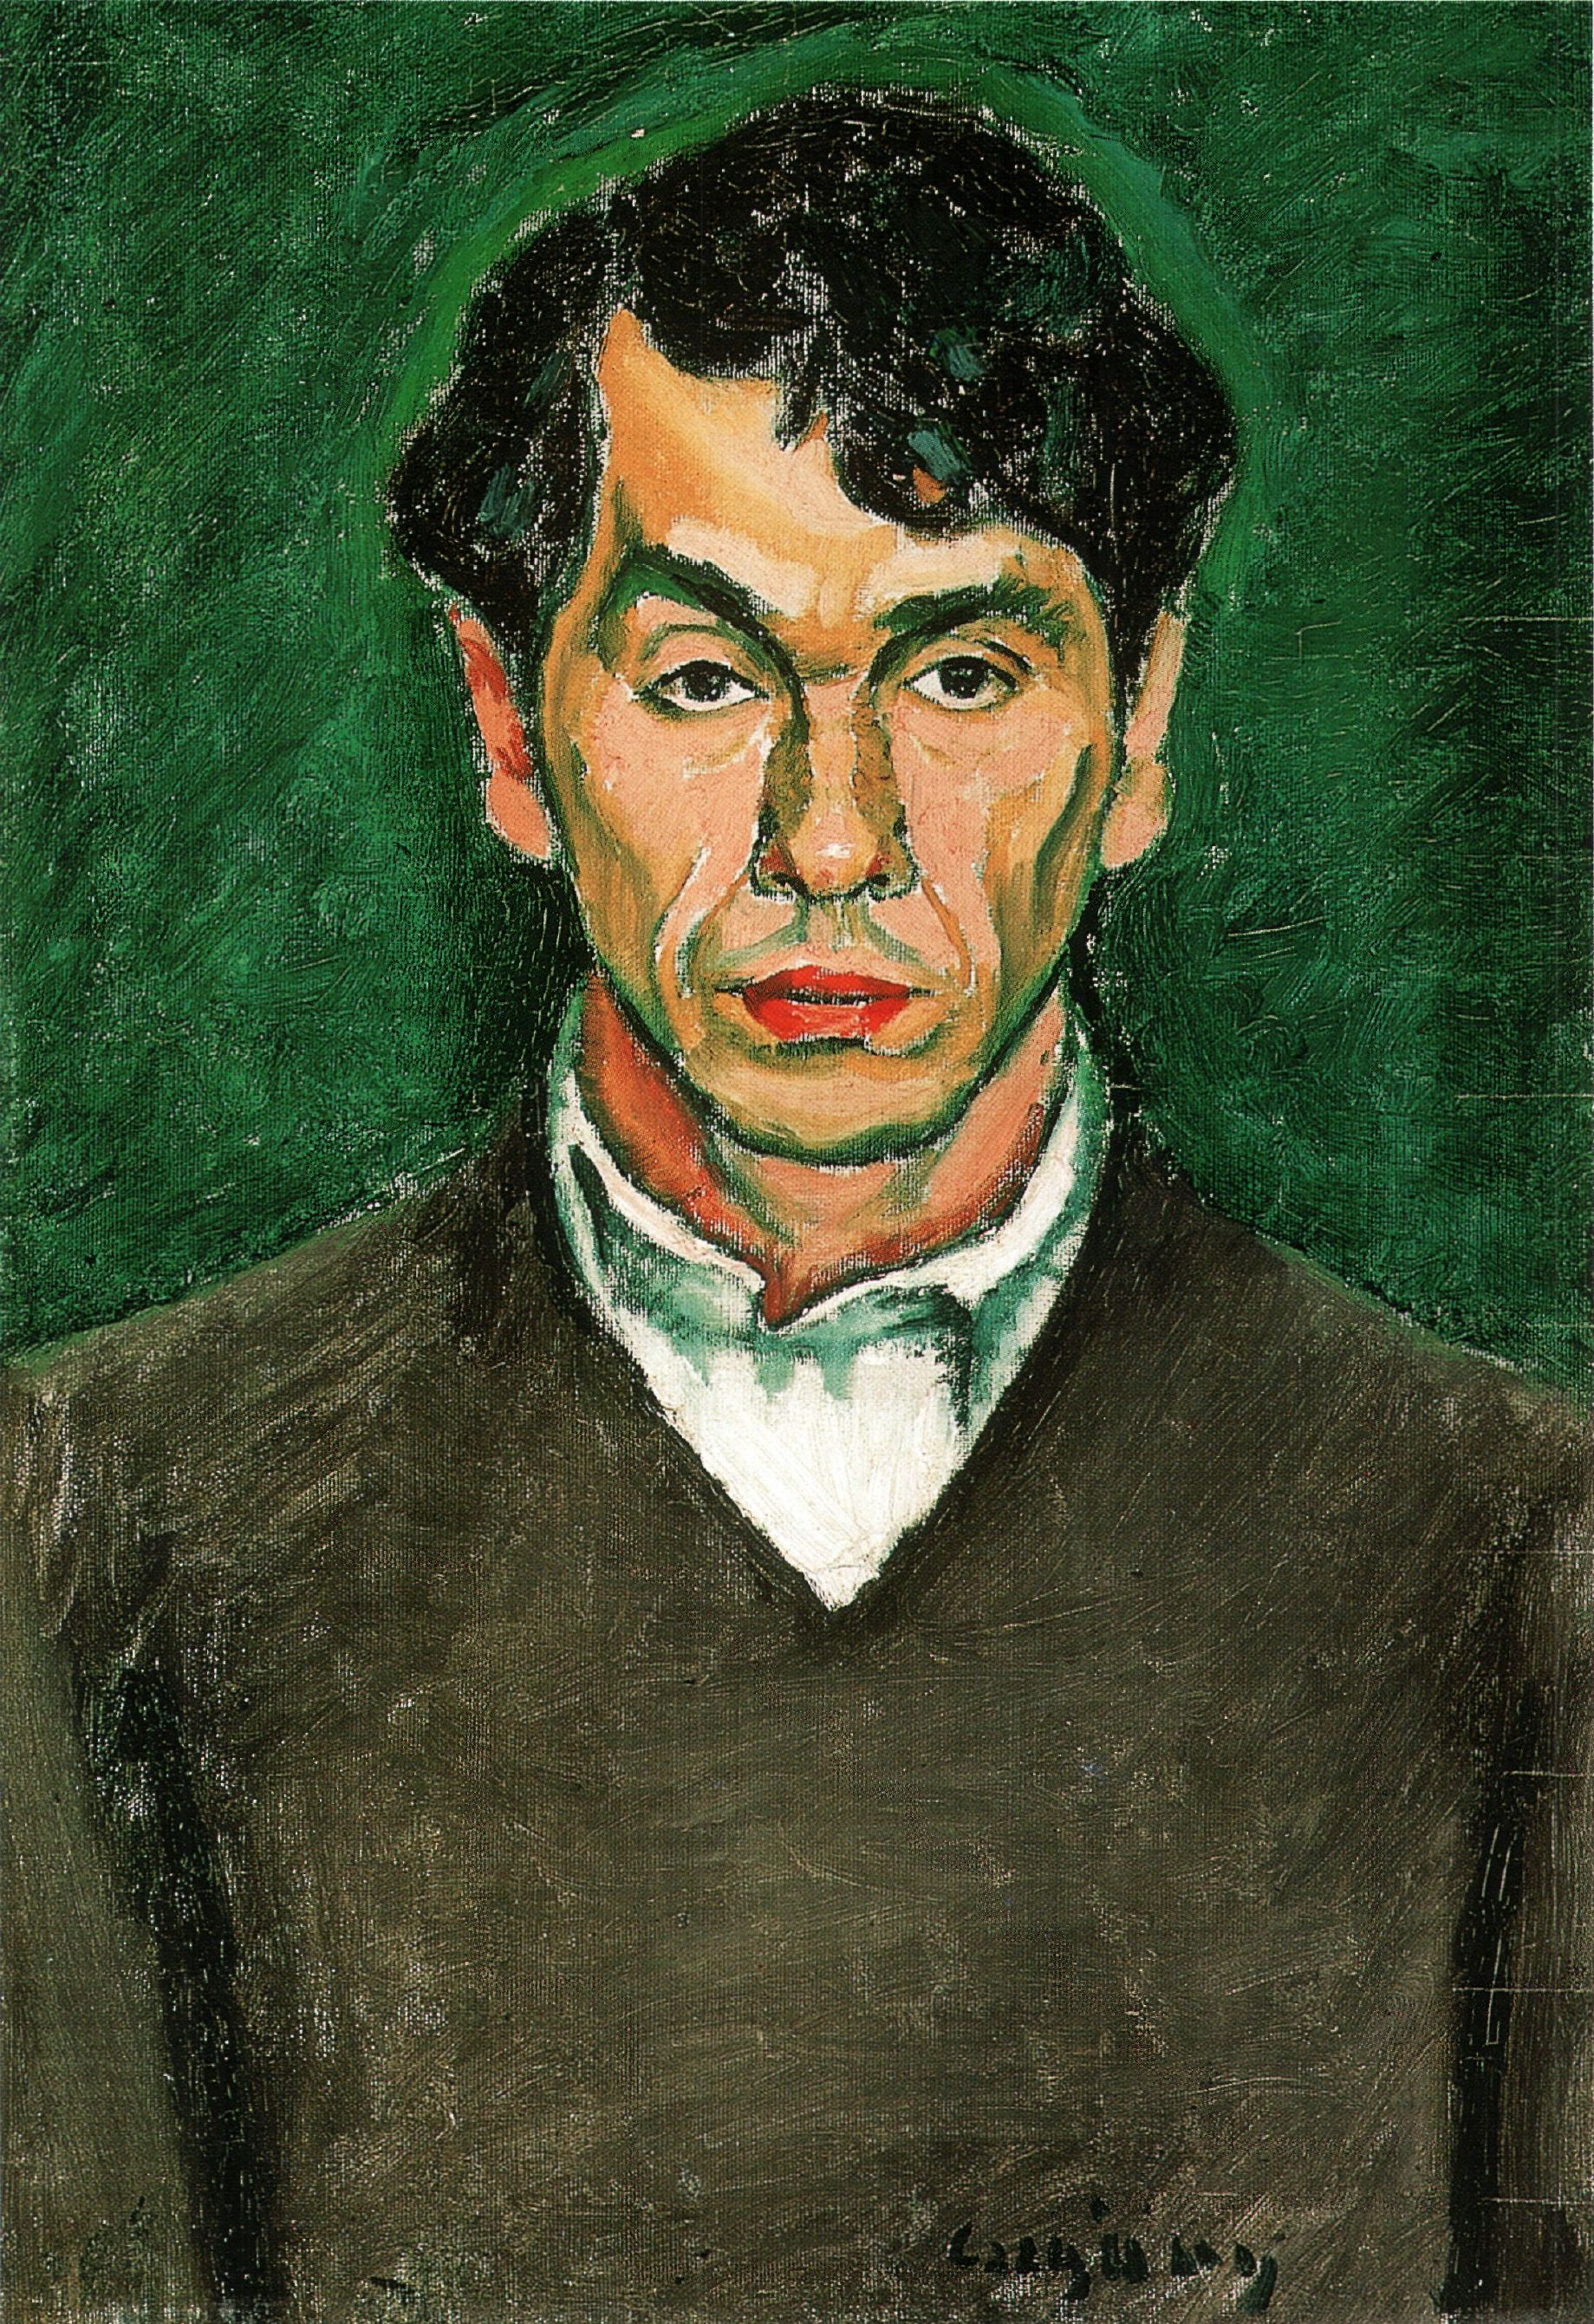 File:CZIGÁNYDezső (1883-1937) painter Self-portrait 1912.jpg